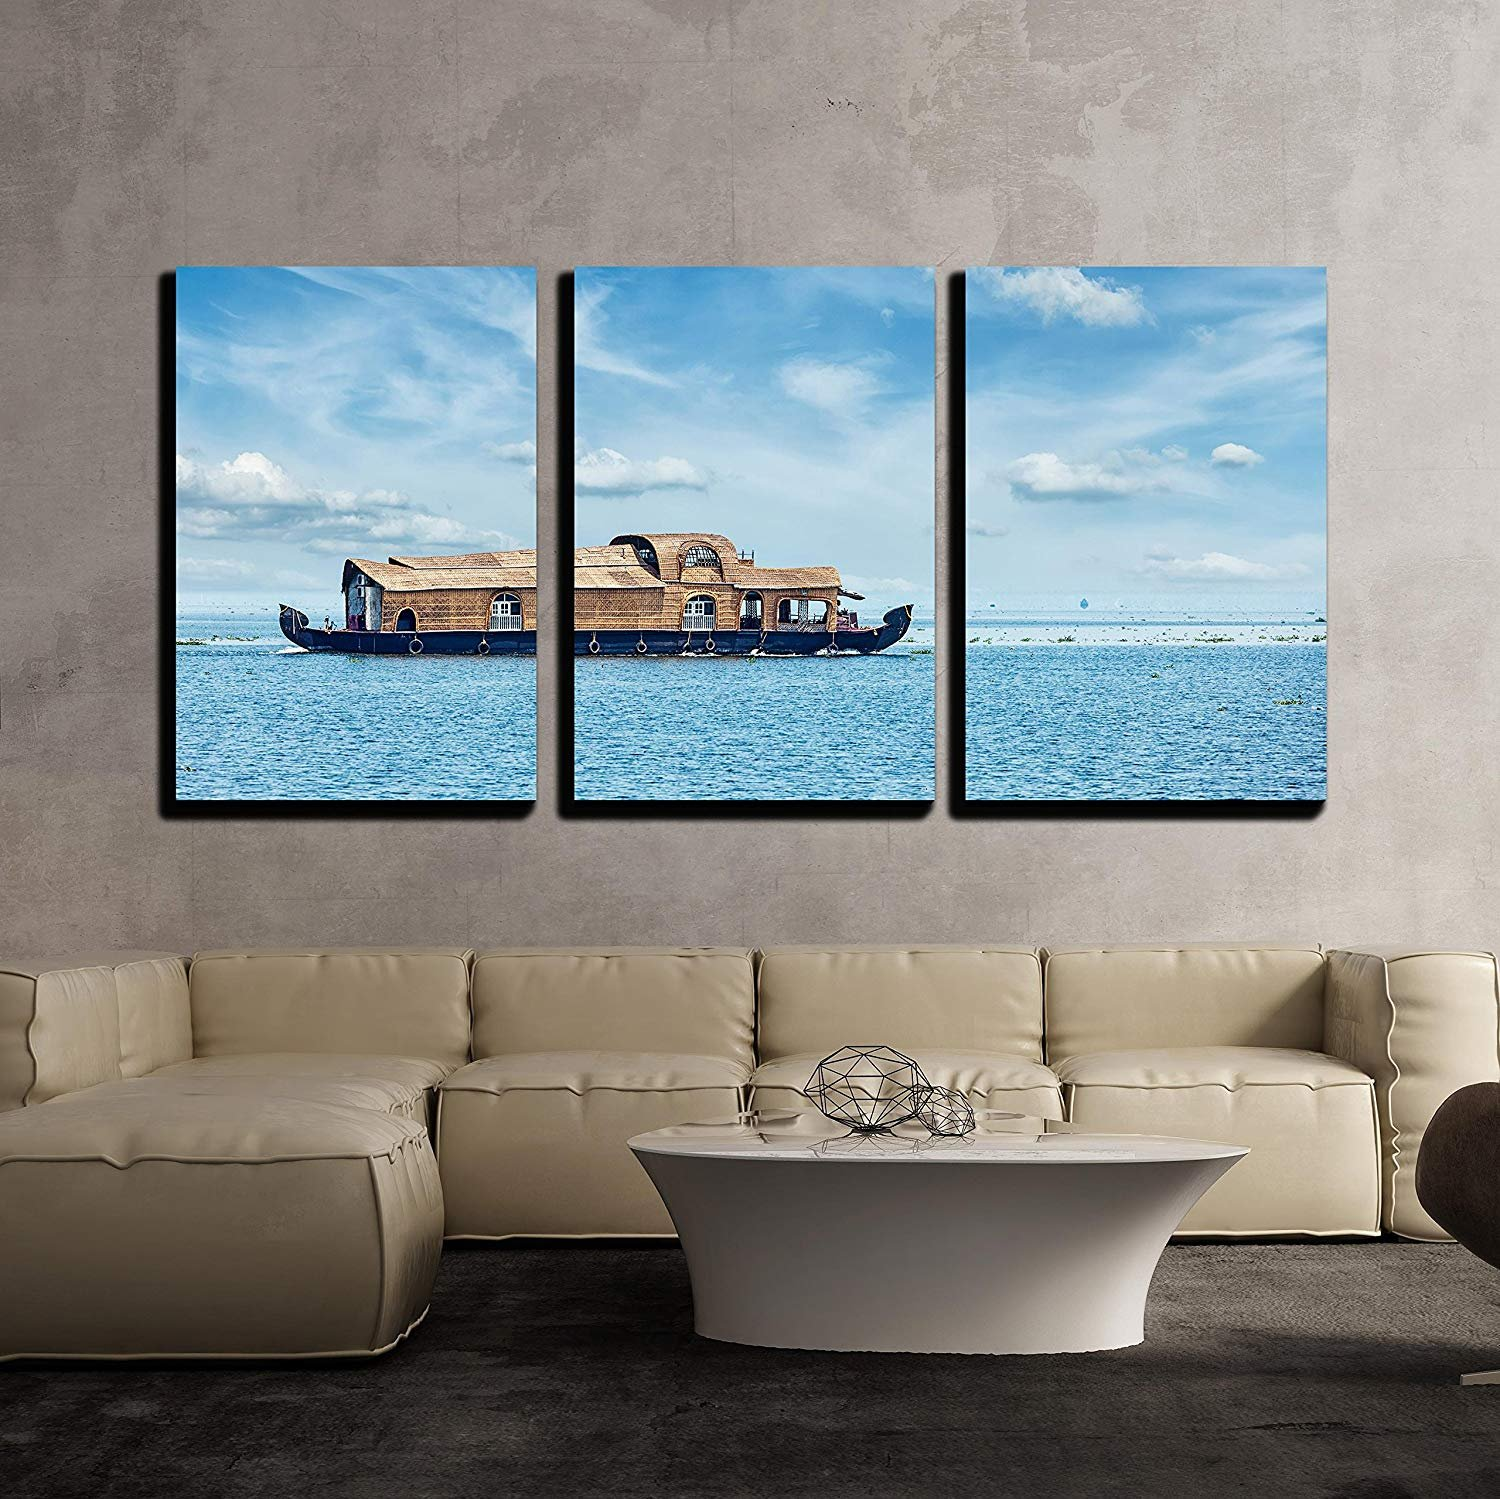 BABE MAPS 16''x24''x3 Panels Wall Decor Artwork Ready Hang Paintings Tourist Houseboat in Vembanadu Lake, Kerala, India Painting on Canvas Home Decorations